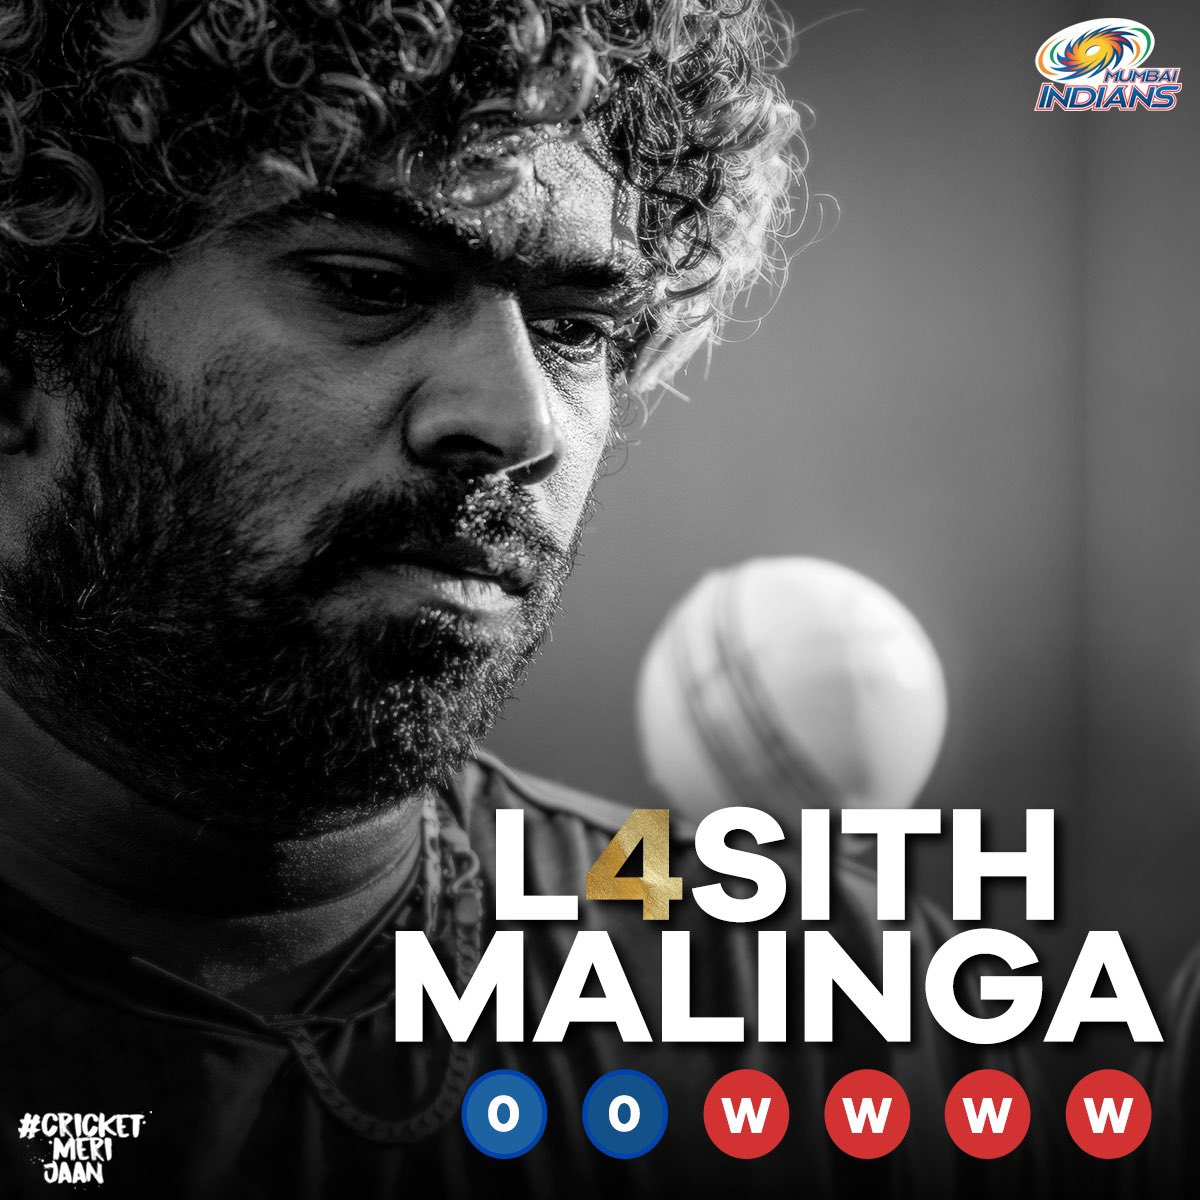 Toes. Stumps. World records. Nothing is safe when L4sith Malinga has his  set   #OneFamily #CricketMeriJaan #SLvNZ <br>http://pic.twitter.com/sQYJP8tGtk